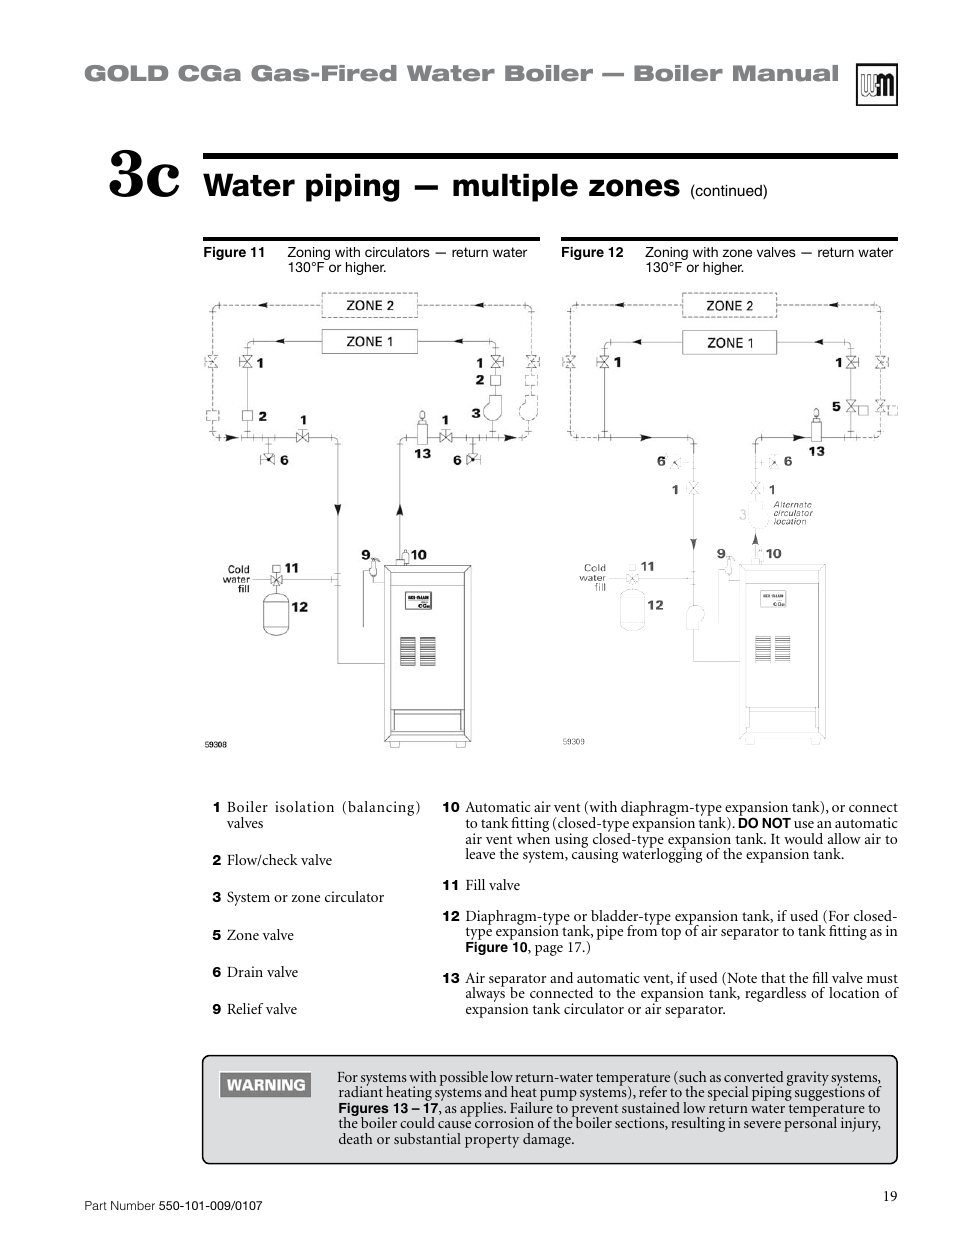 Water Piping Multiple Zones Gold Cga Gas Fired Boiler Weil Mclain Wiring Diagram Manual